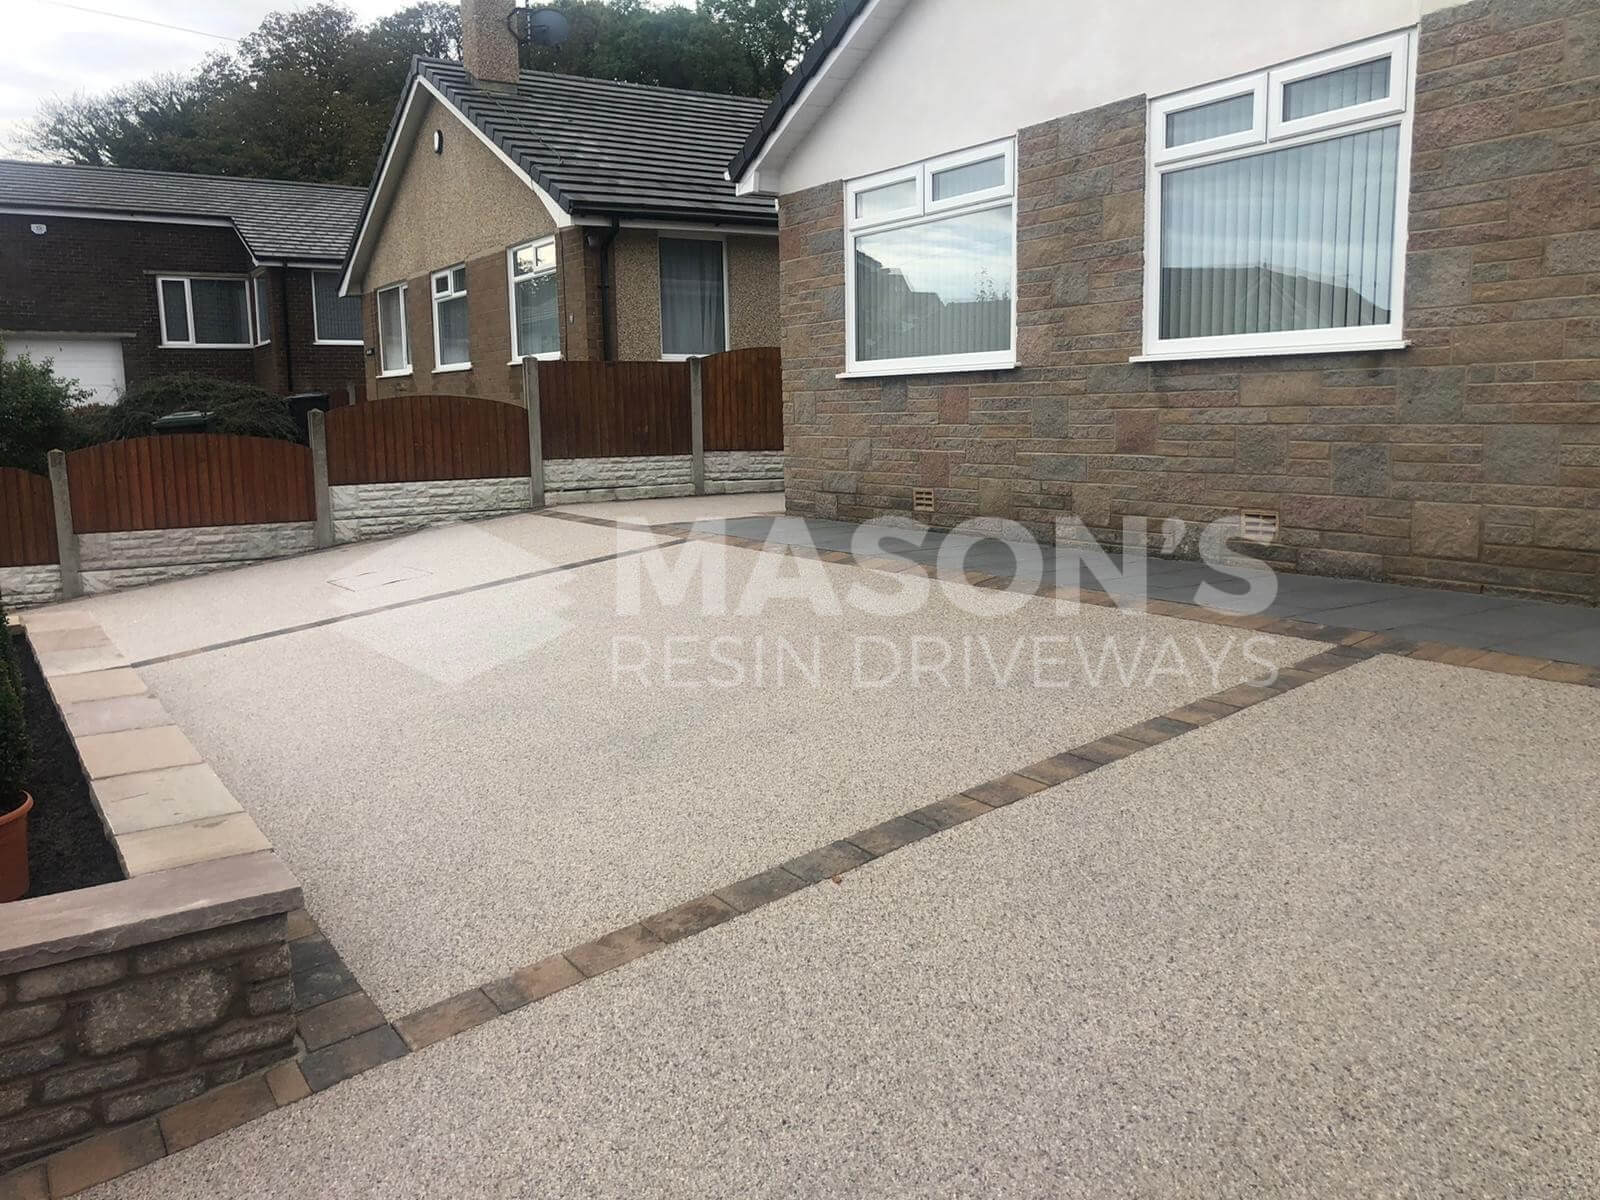 Slanted Pearl Quartz Resin Bound Driveway in Morecambe, Lancashire